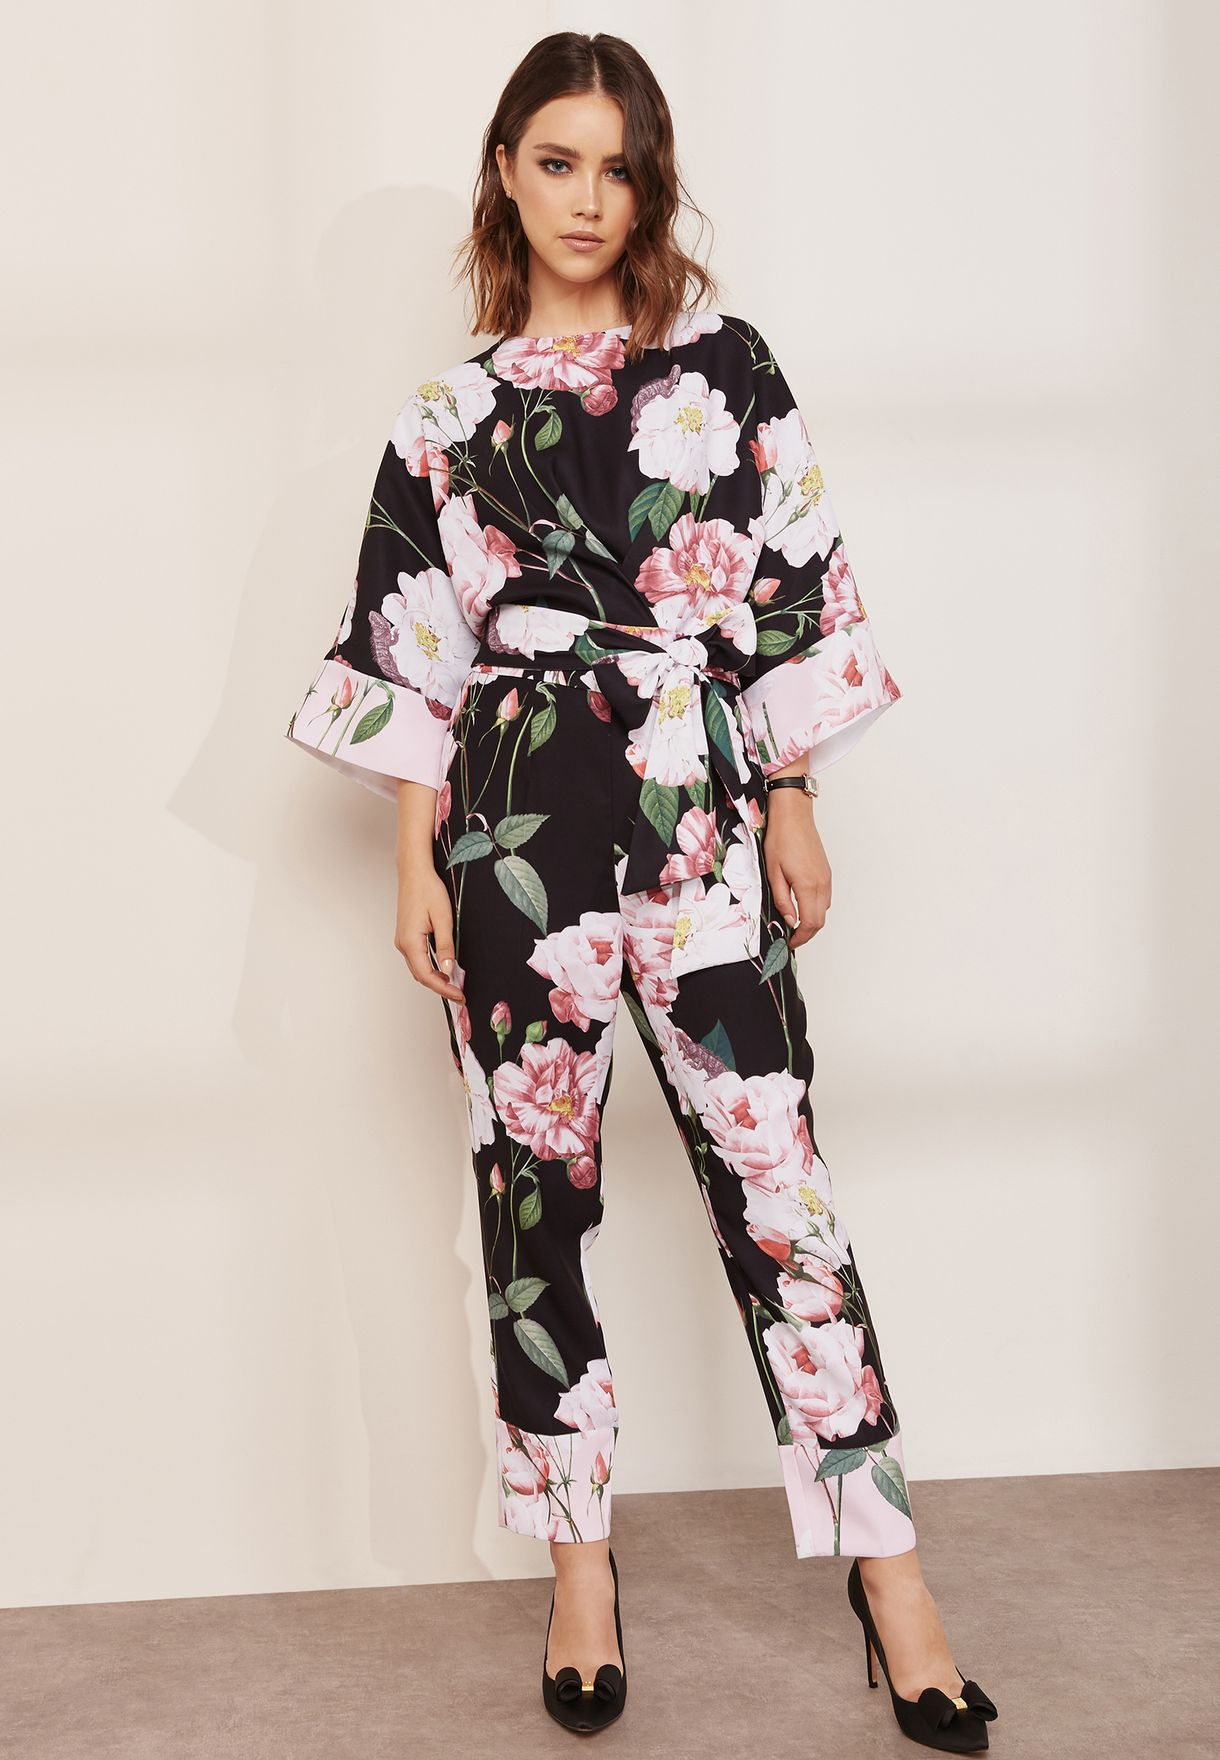 ee0adca6411 Shop Ted baker prints Floral Printed Jumpsuit 147758 for Women in ...